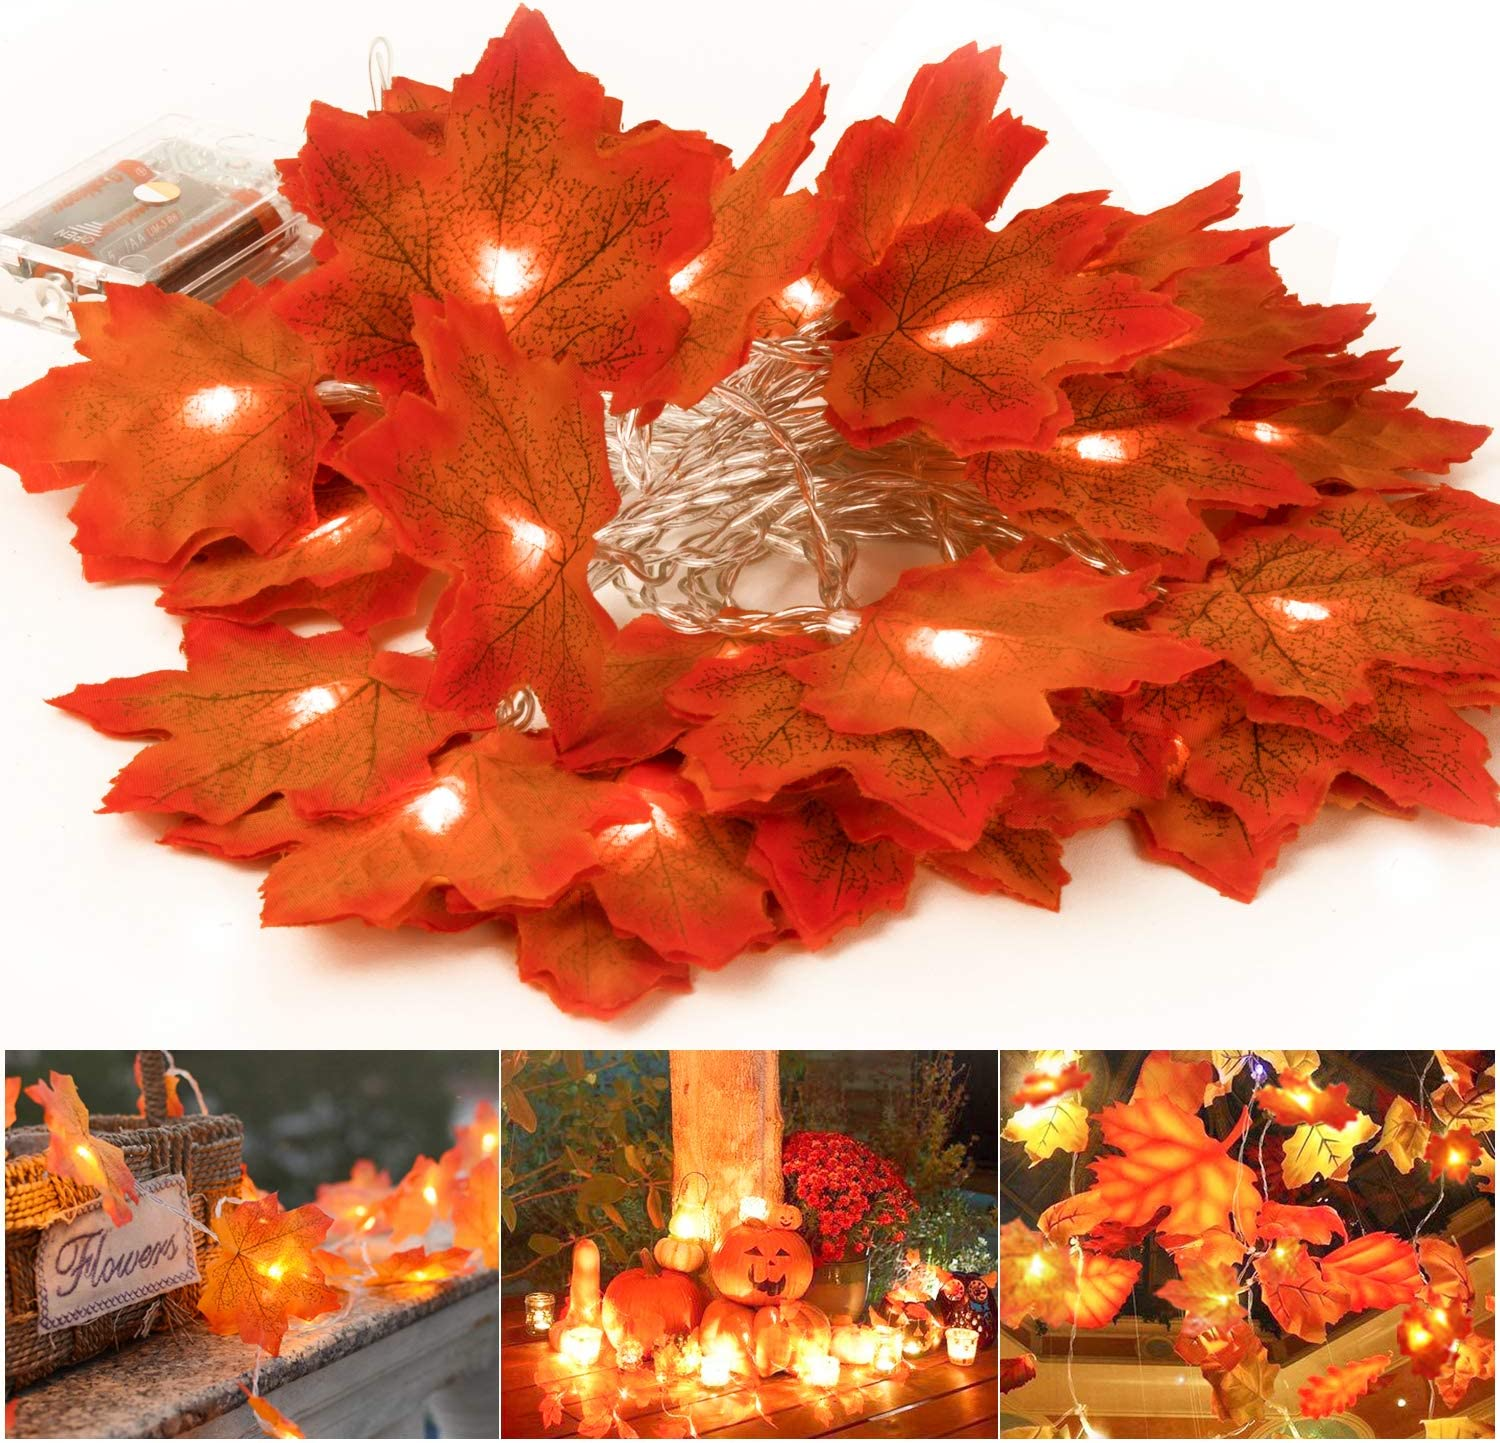 Buluri 6M String Lights Maple Leaf Light,Thanksgiving Fall Decorations Light,40 LED Lights for Indoor Outdoor Thanksgiving Gift,Christmas Decor 3AA Battery Operated Fall Garland String Lights(40)